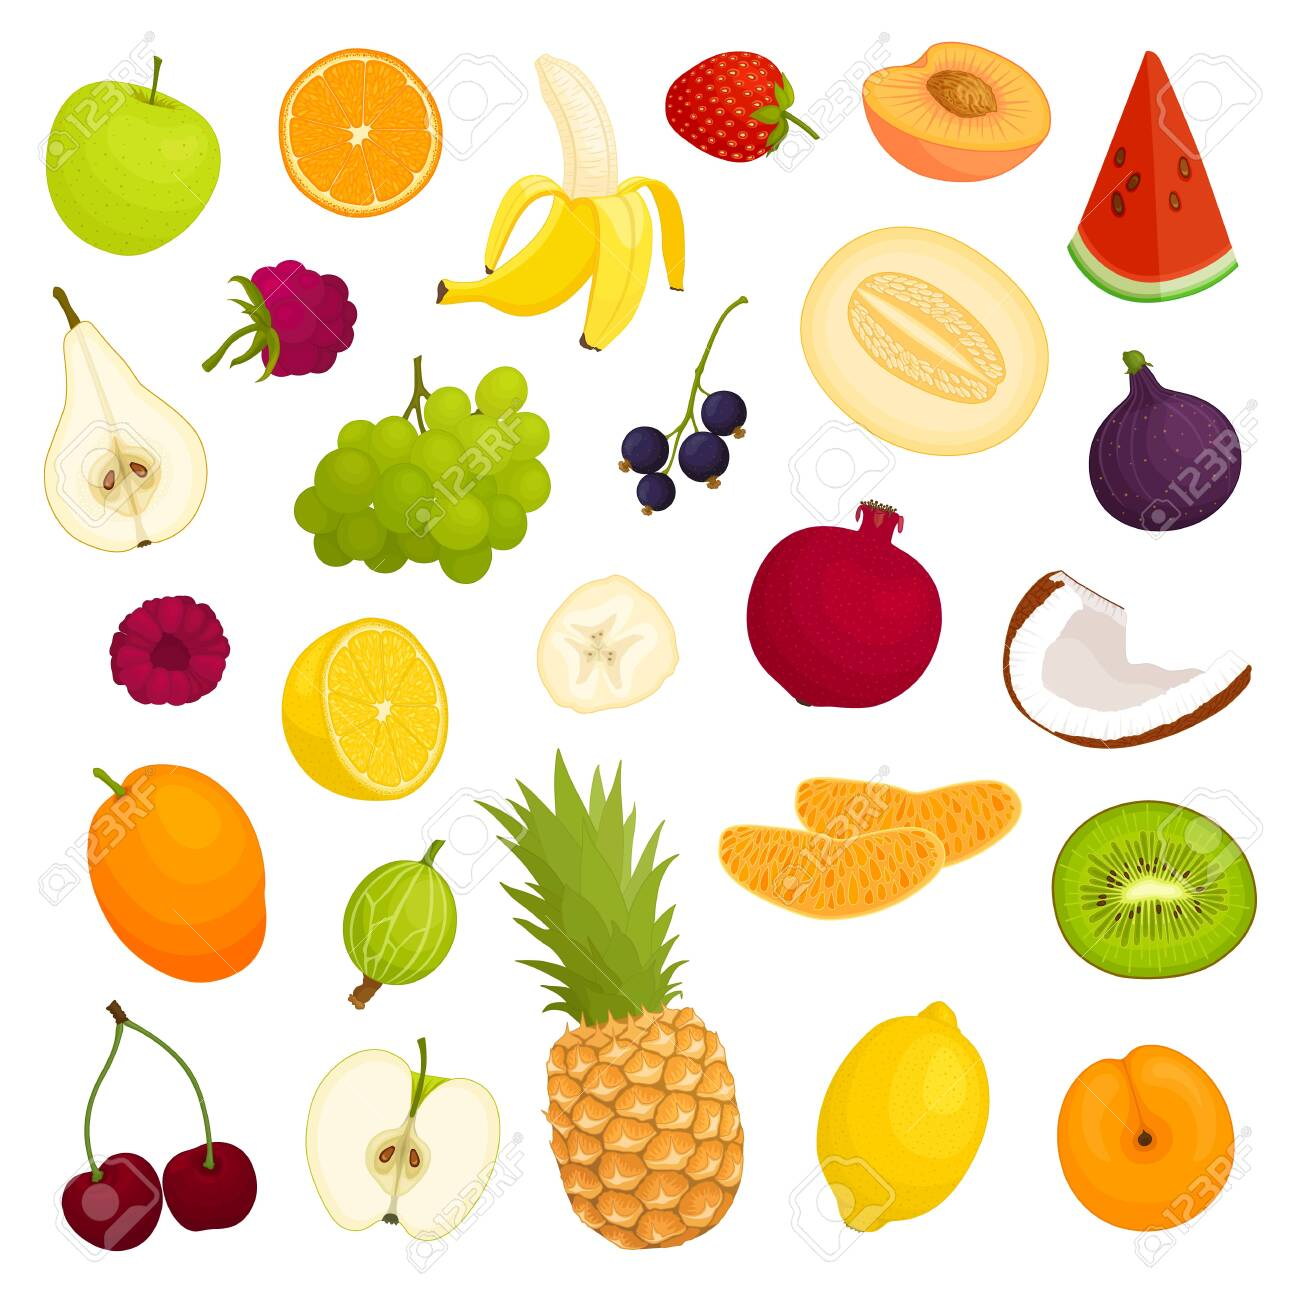 Assorted variety of fresh fruits. Vector illustration. - 131596442